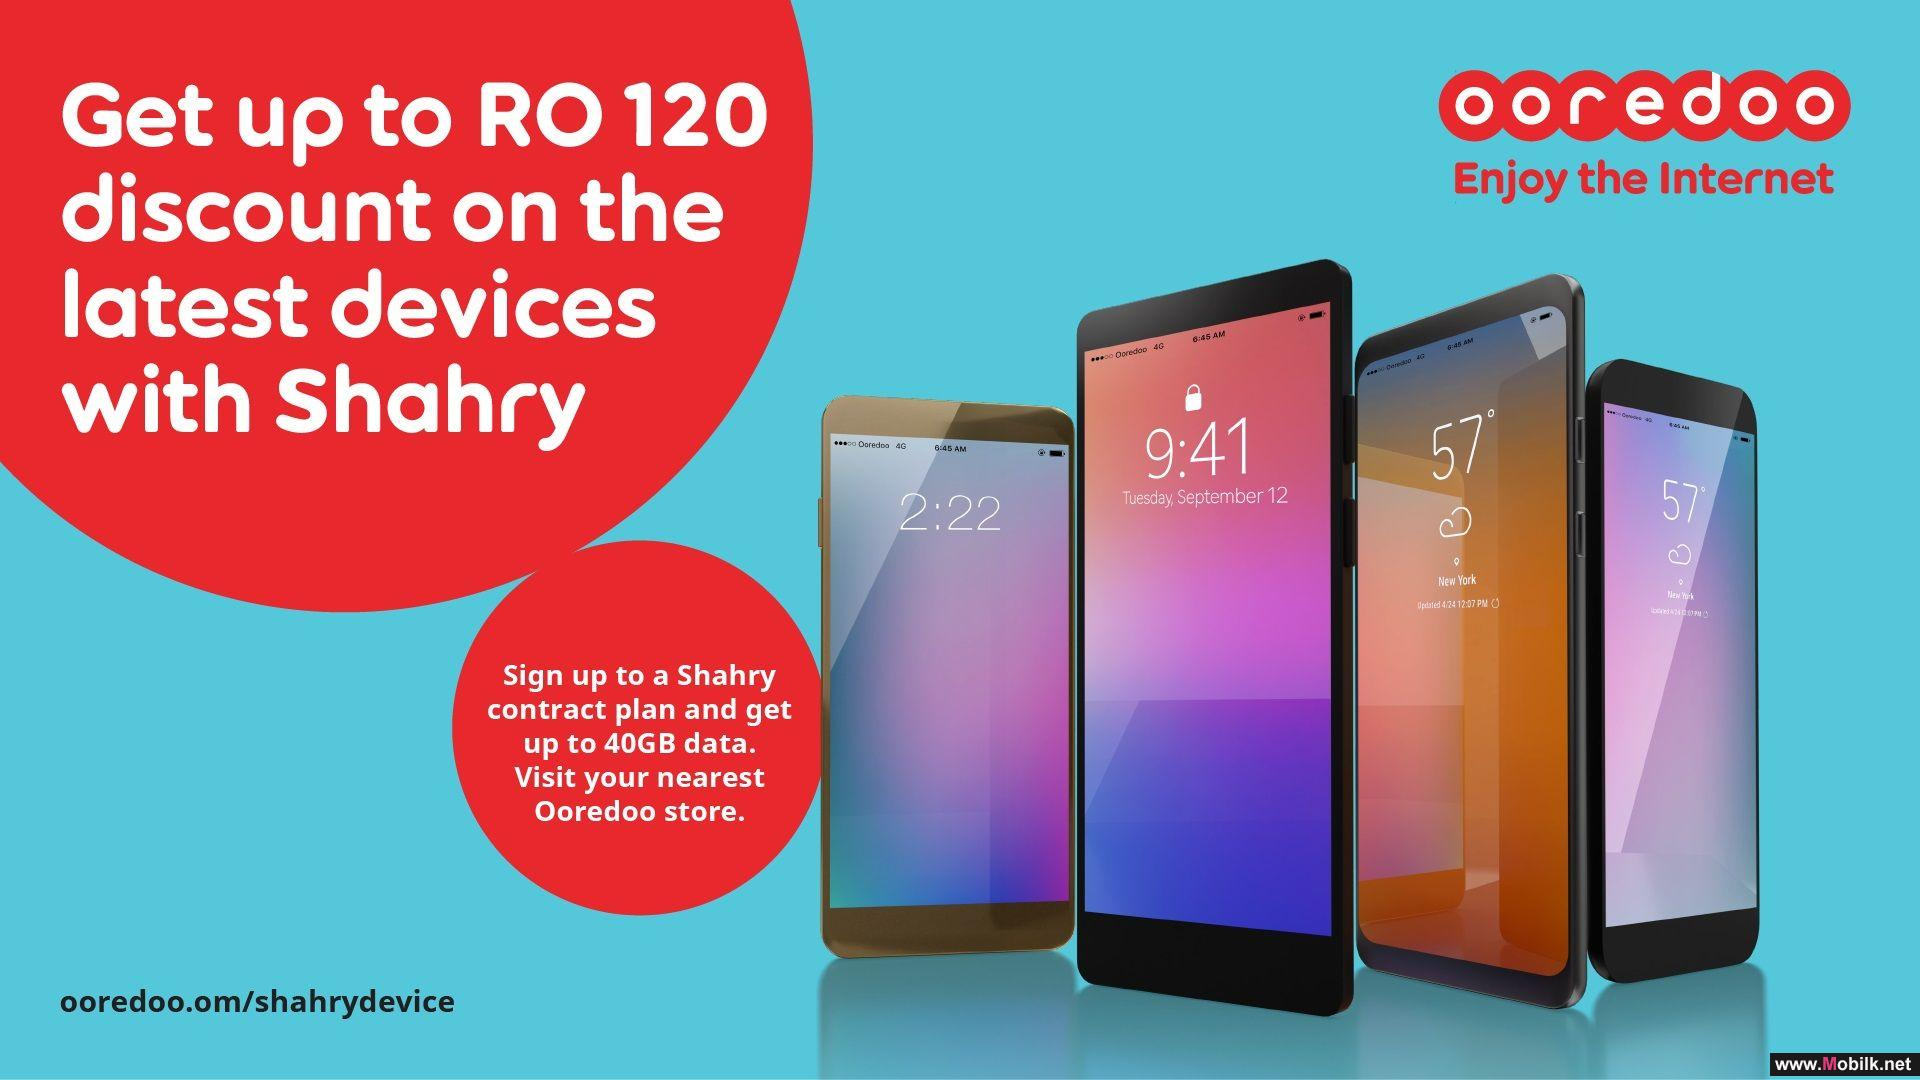 Ooredoo Offers Shahry Customers up to OMR 120 off Their Handset of Choice and up to 40 GB Data